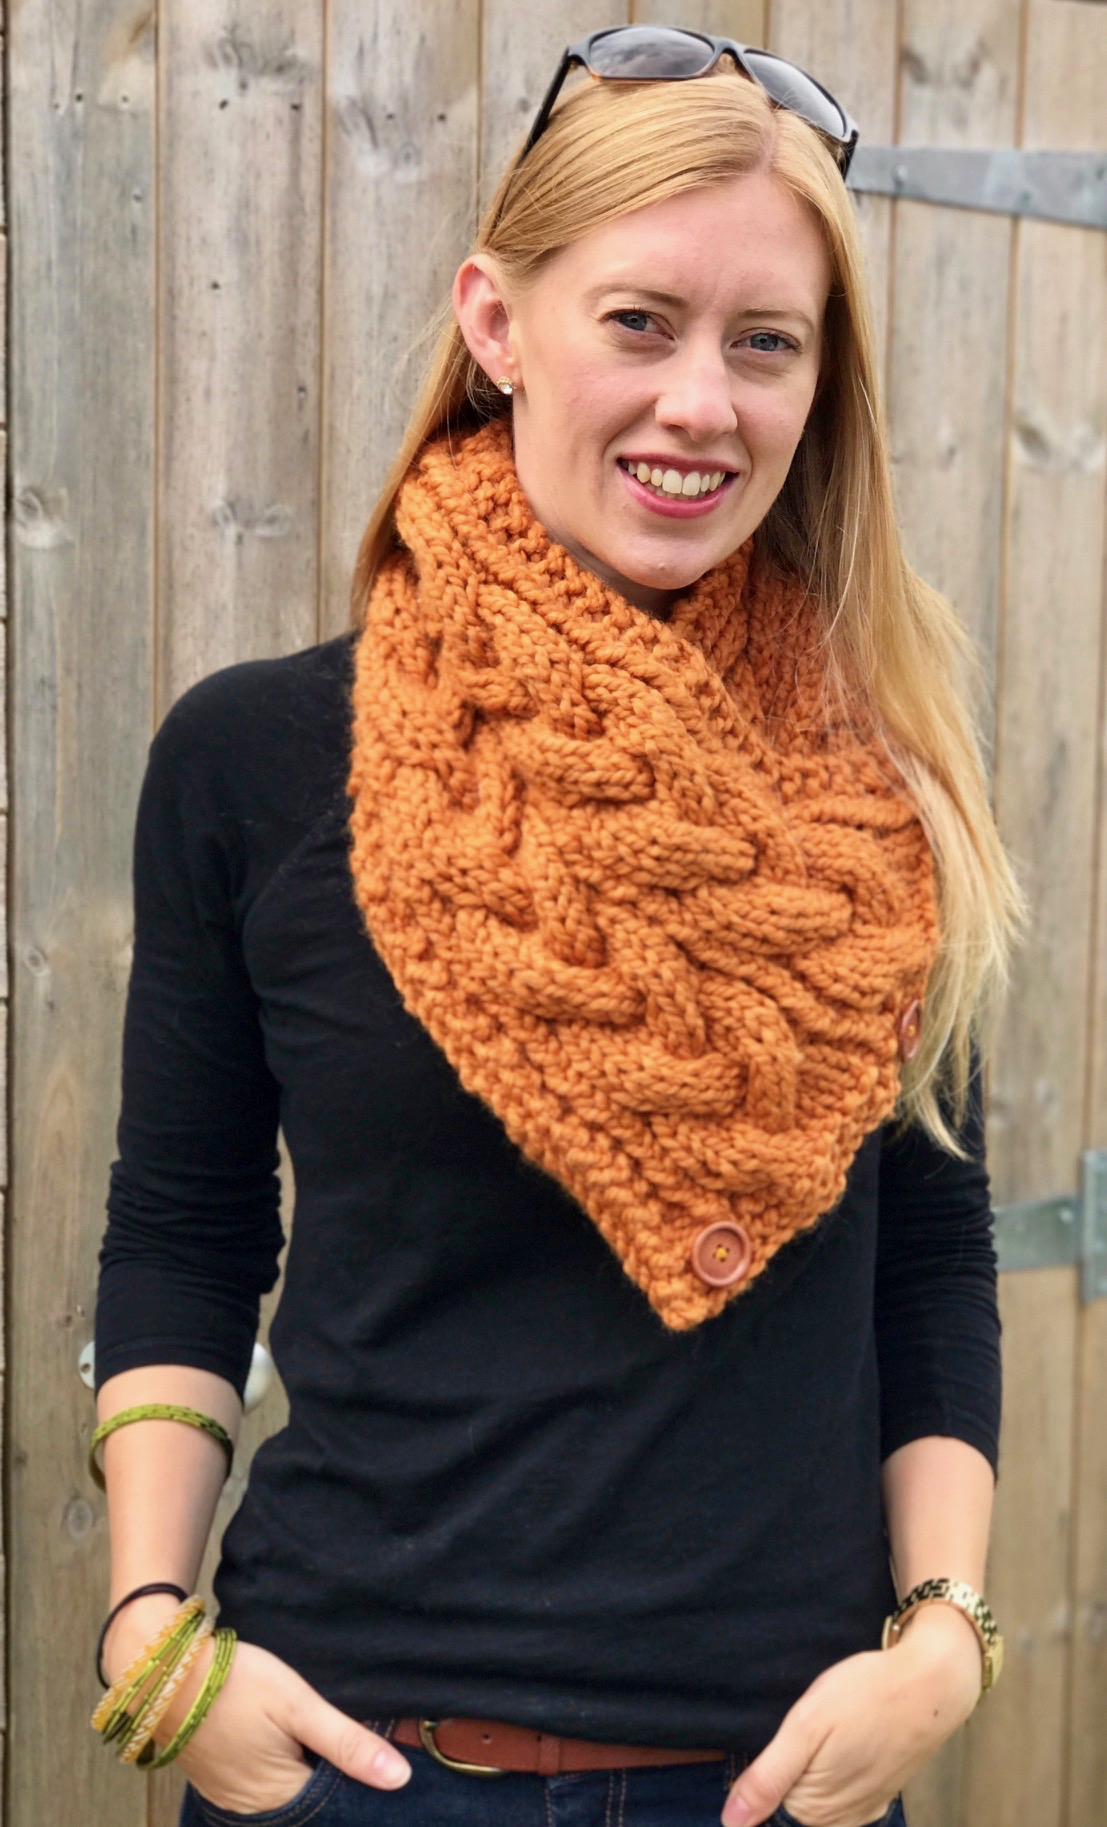 Knitted Neck Warmer : knitted, warmer, Eirene, Cable, Warmer, Triangular, Scarf, Knitting, Pattern